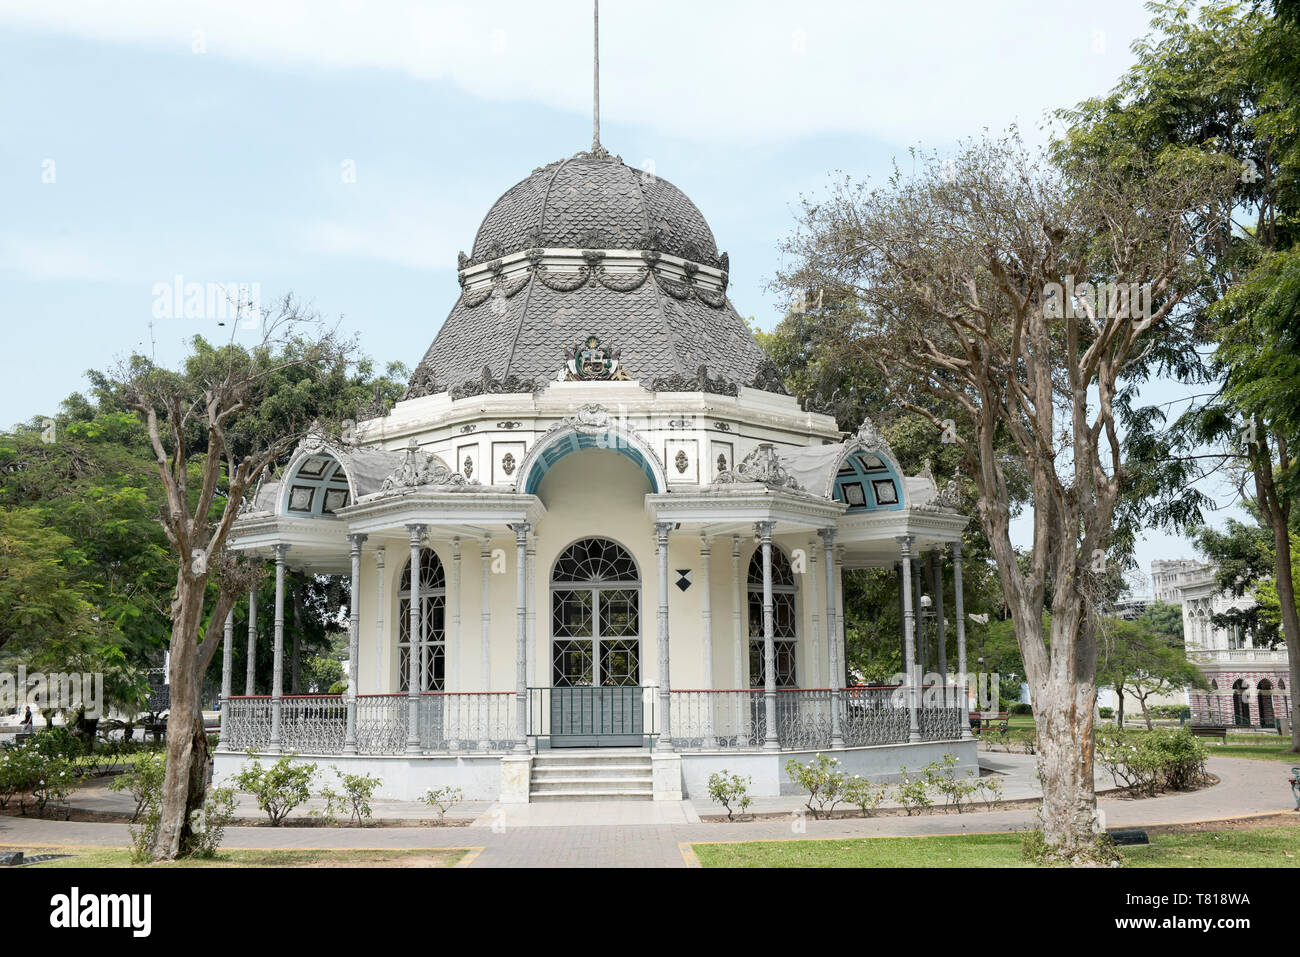 View of classic bizantine built in Exposition park, Lima, Peru. - Stock Image